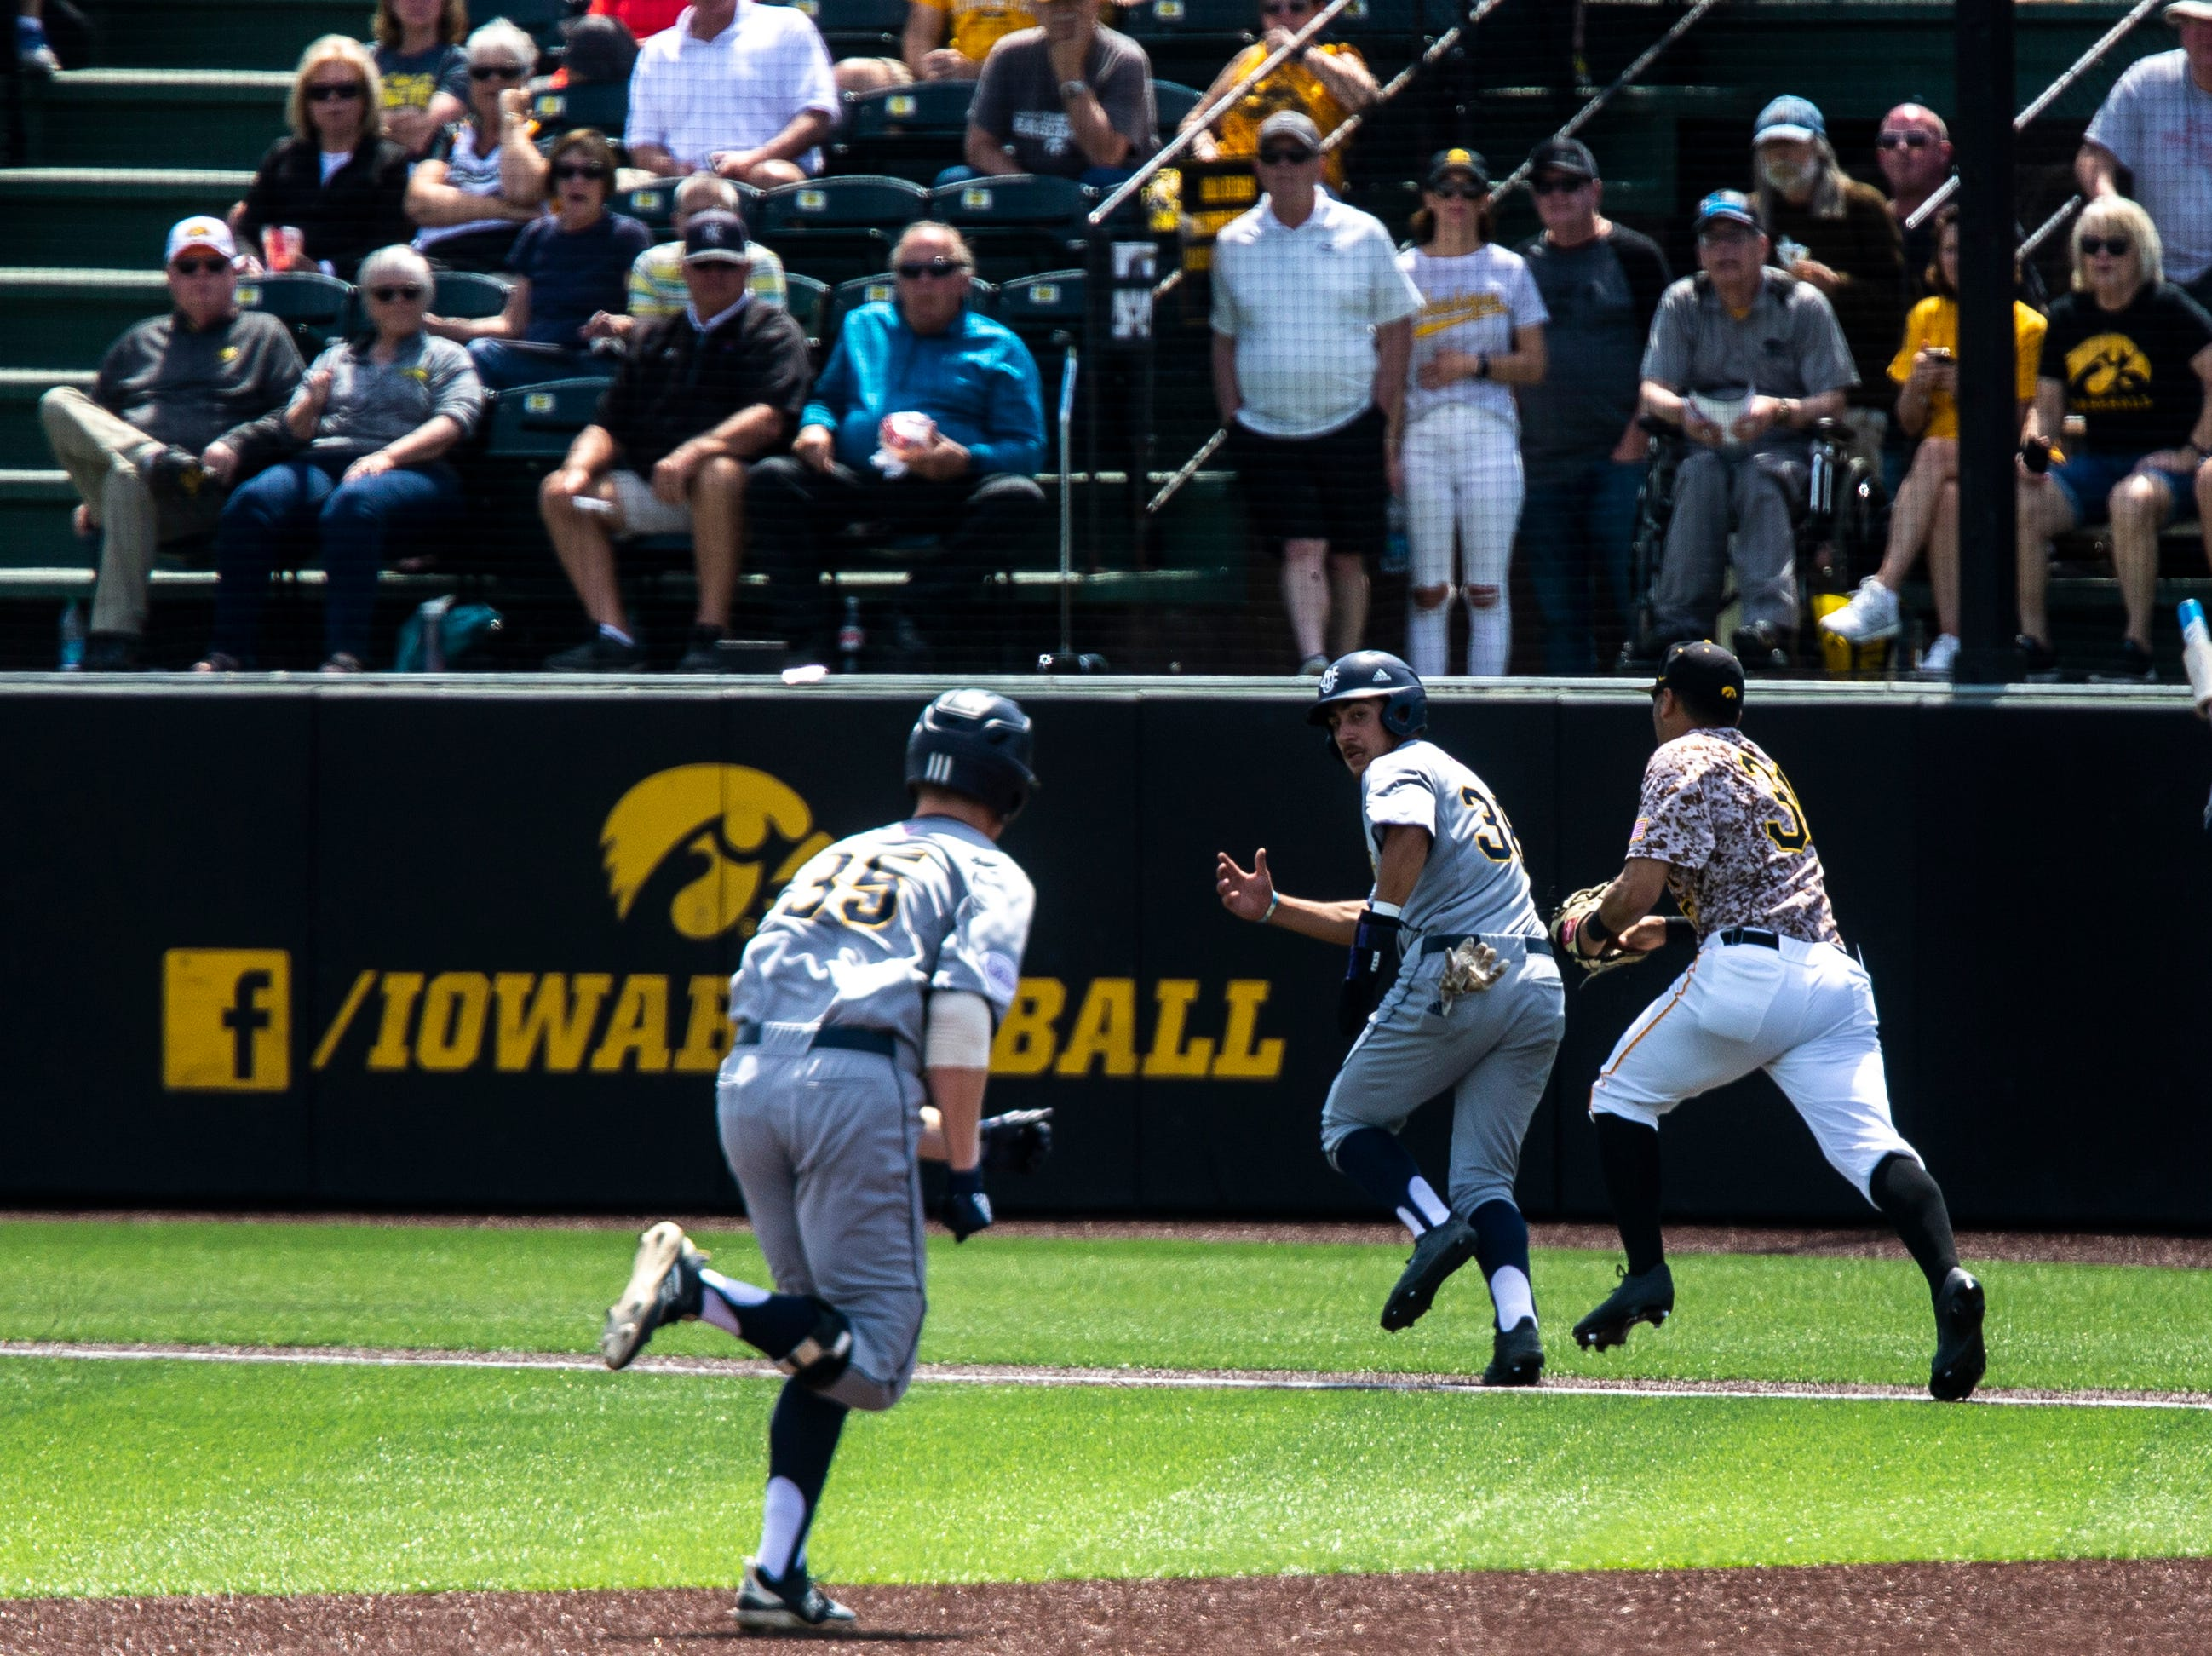 Iowa infielder Matthew Sosa (31) chases down University of California Irvine's Adrian Damla (36) during a NCAA non conference baseball game, Sunday, May 5, 2019, at Duane Banks Field in Iowa City, Iowa.